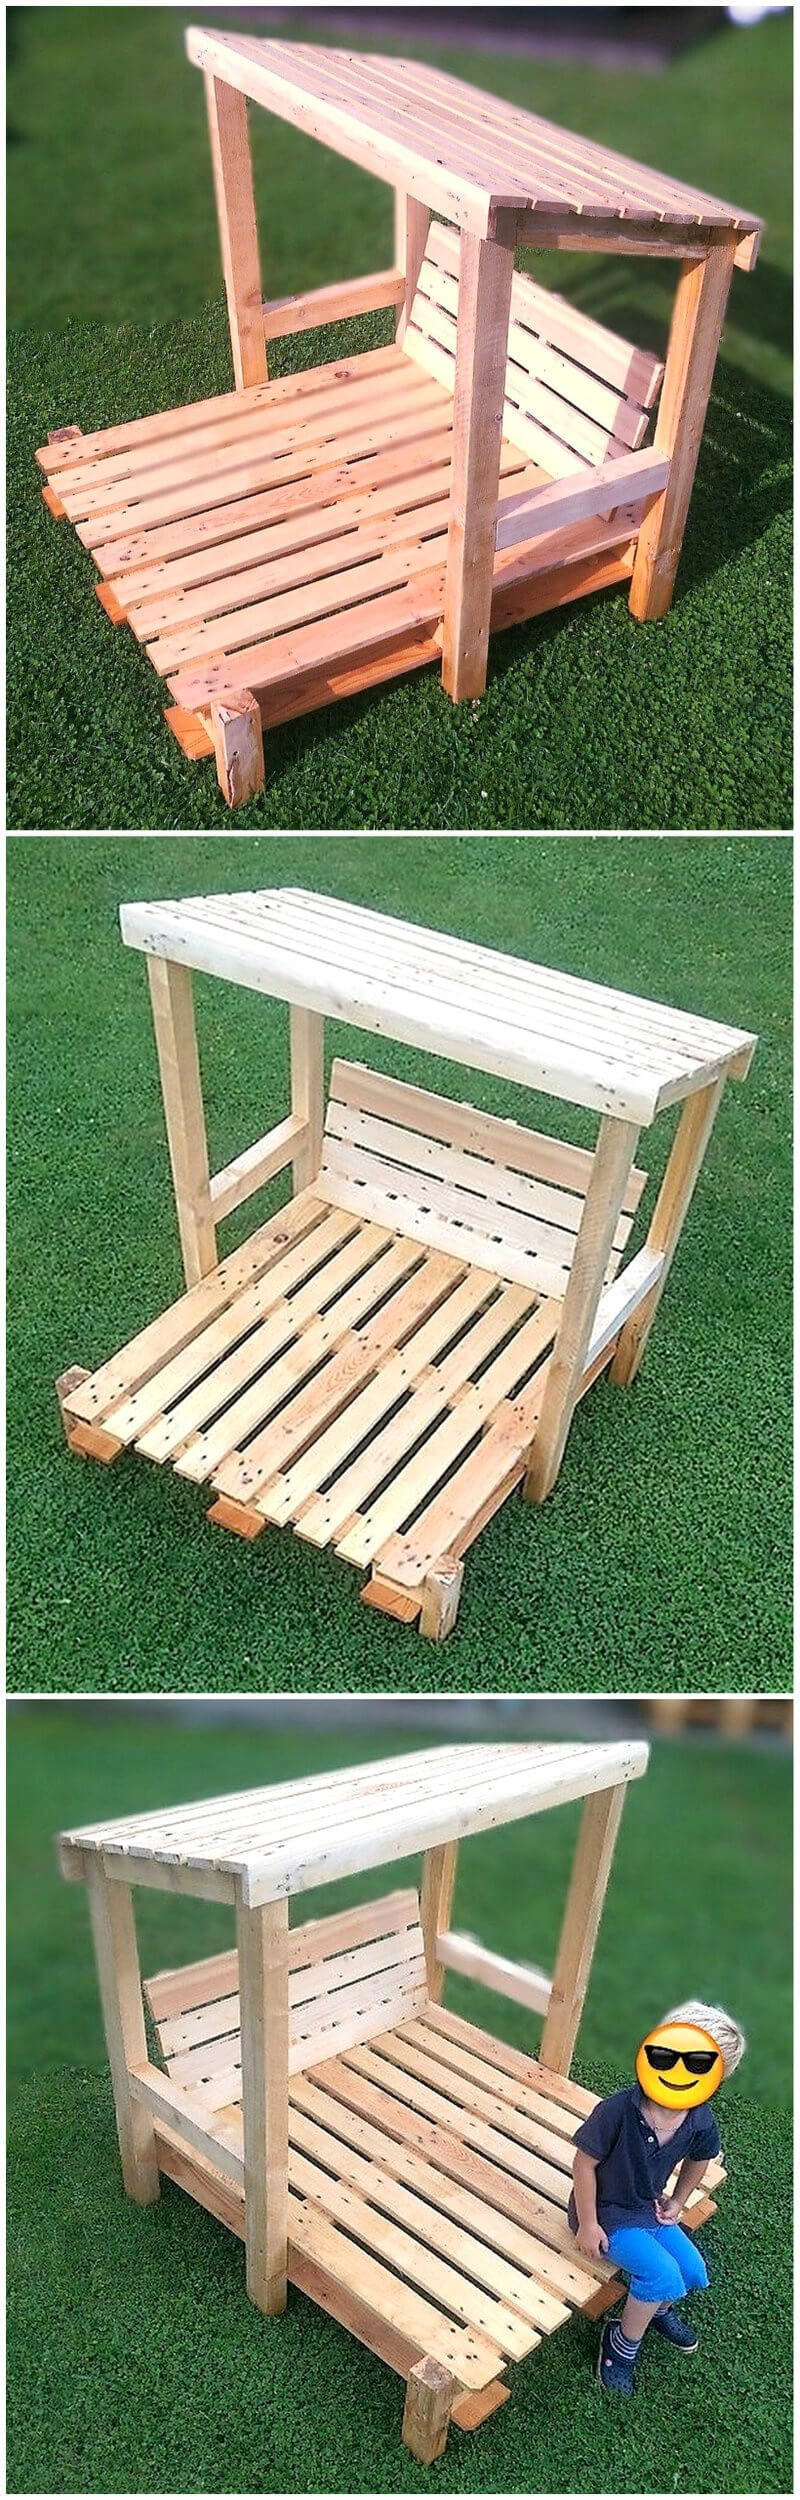 wooden pallets kids chair idea